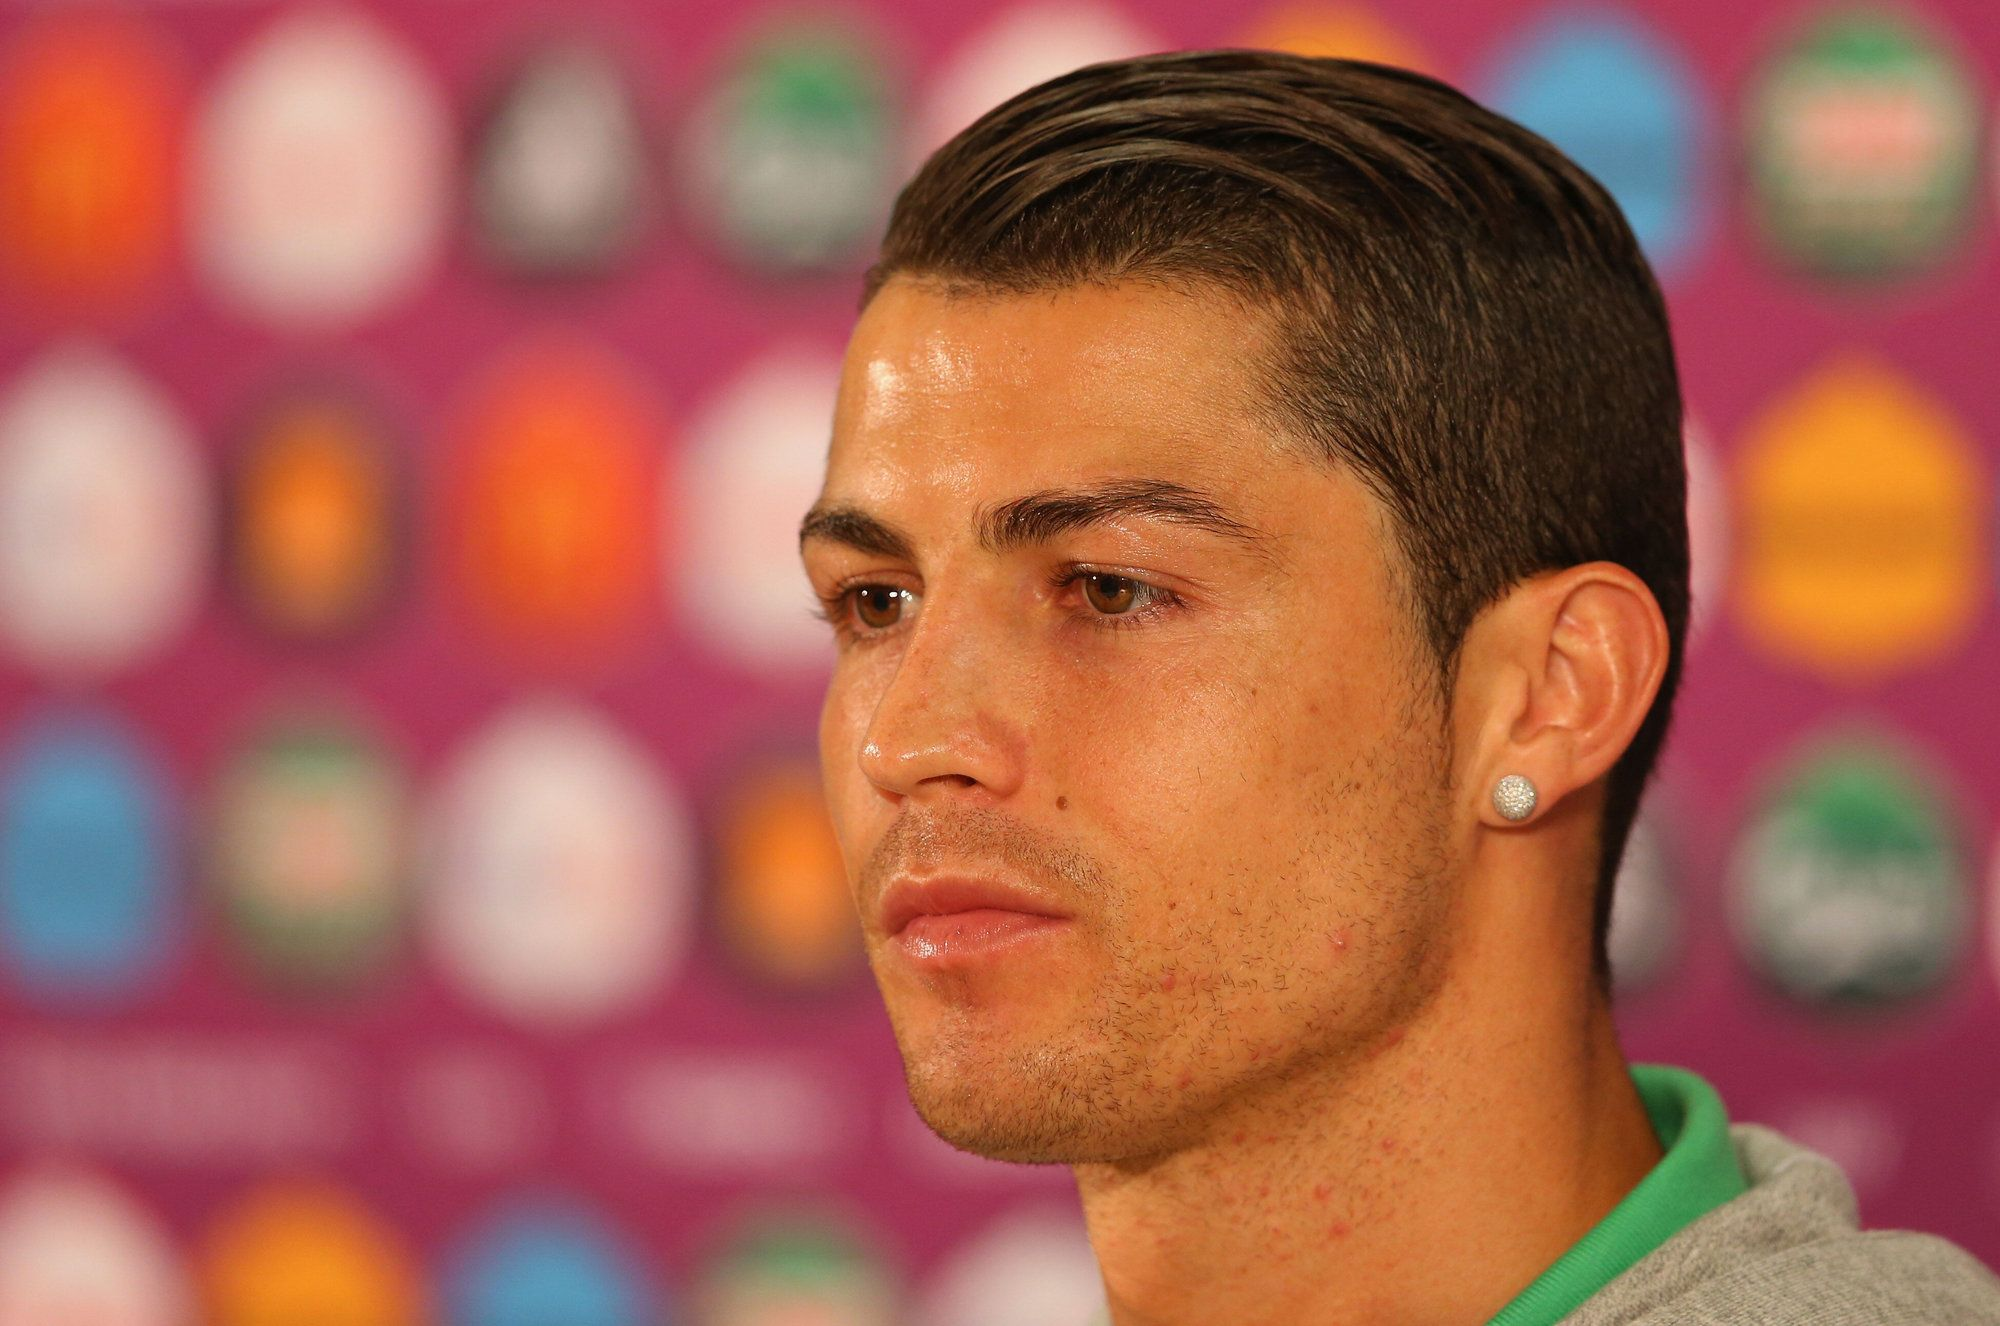 cristiano ronaldo pictures, photos | hd wallpapers | pinterest